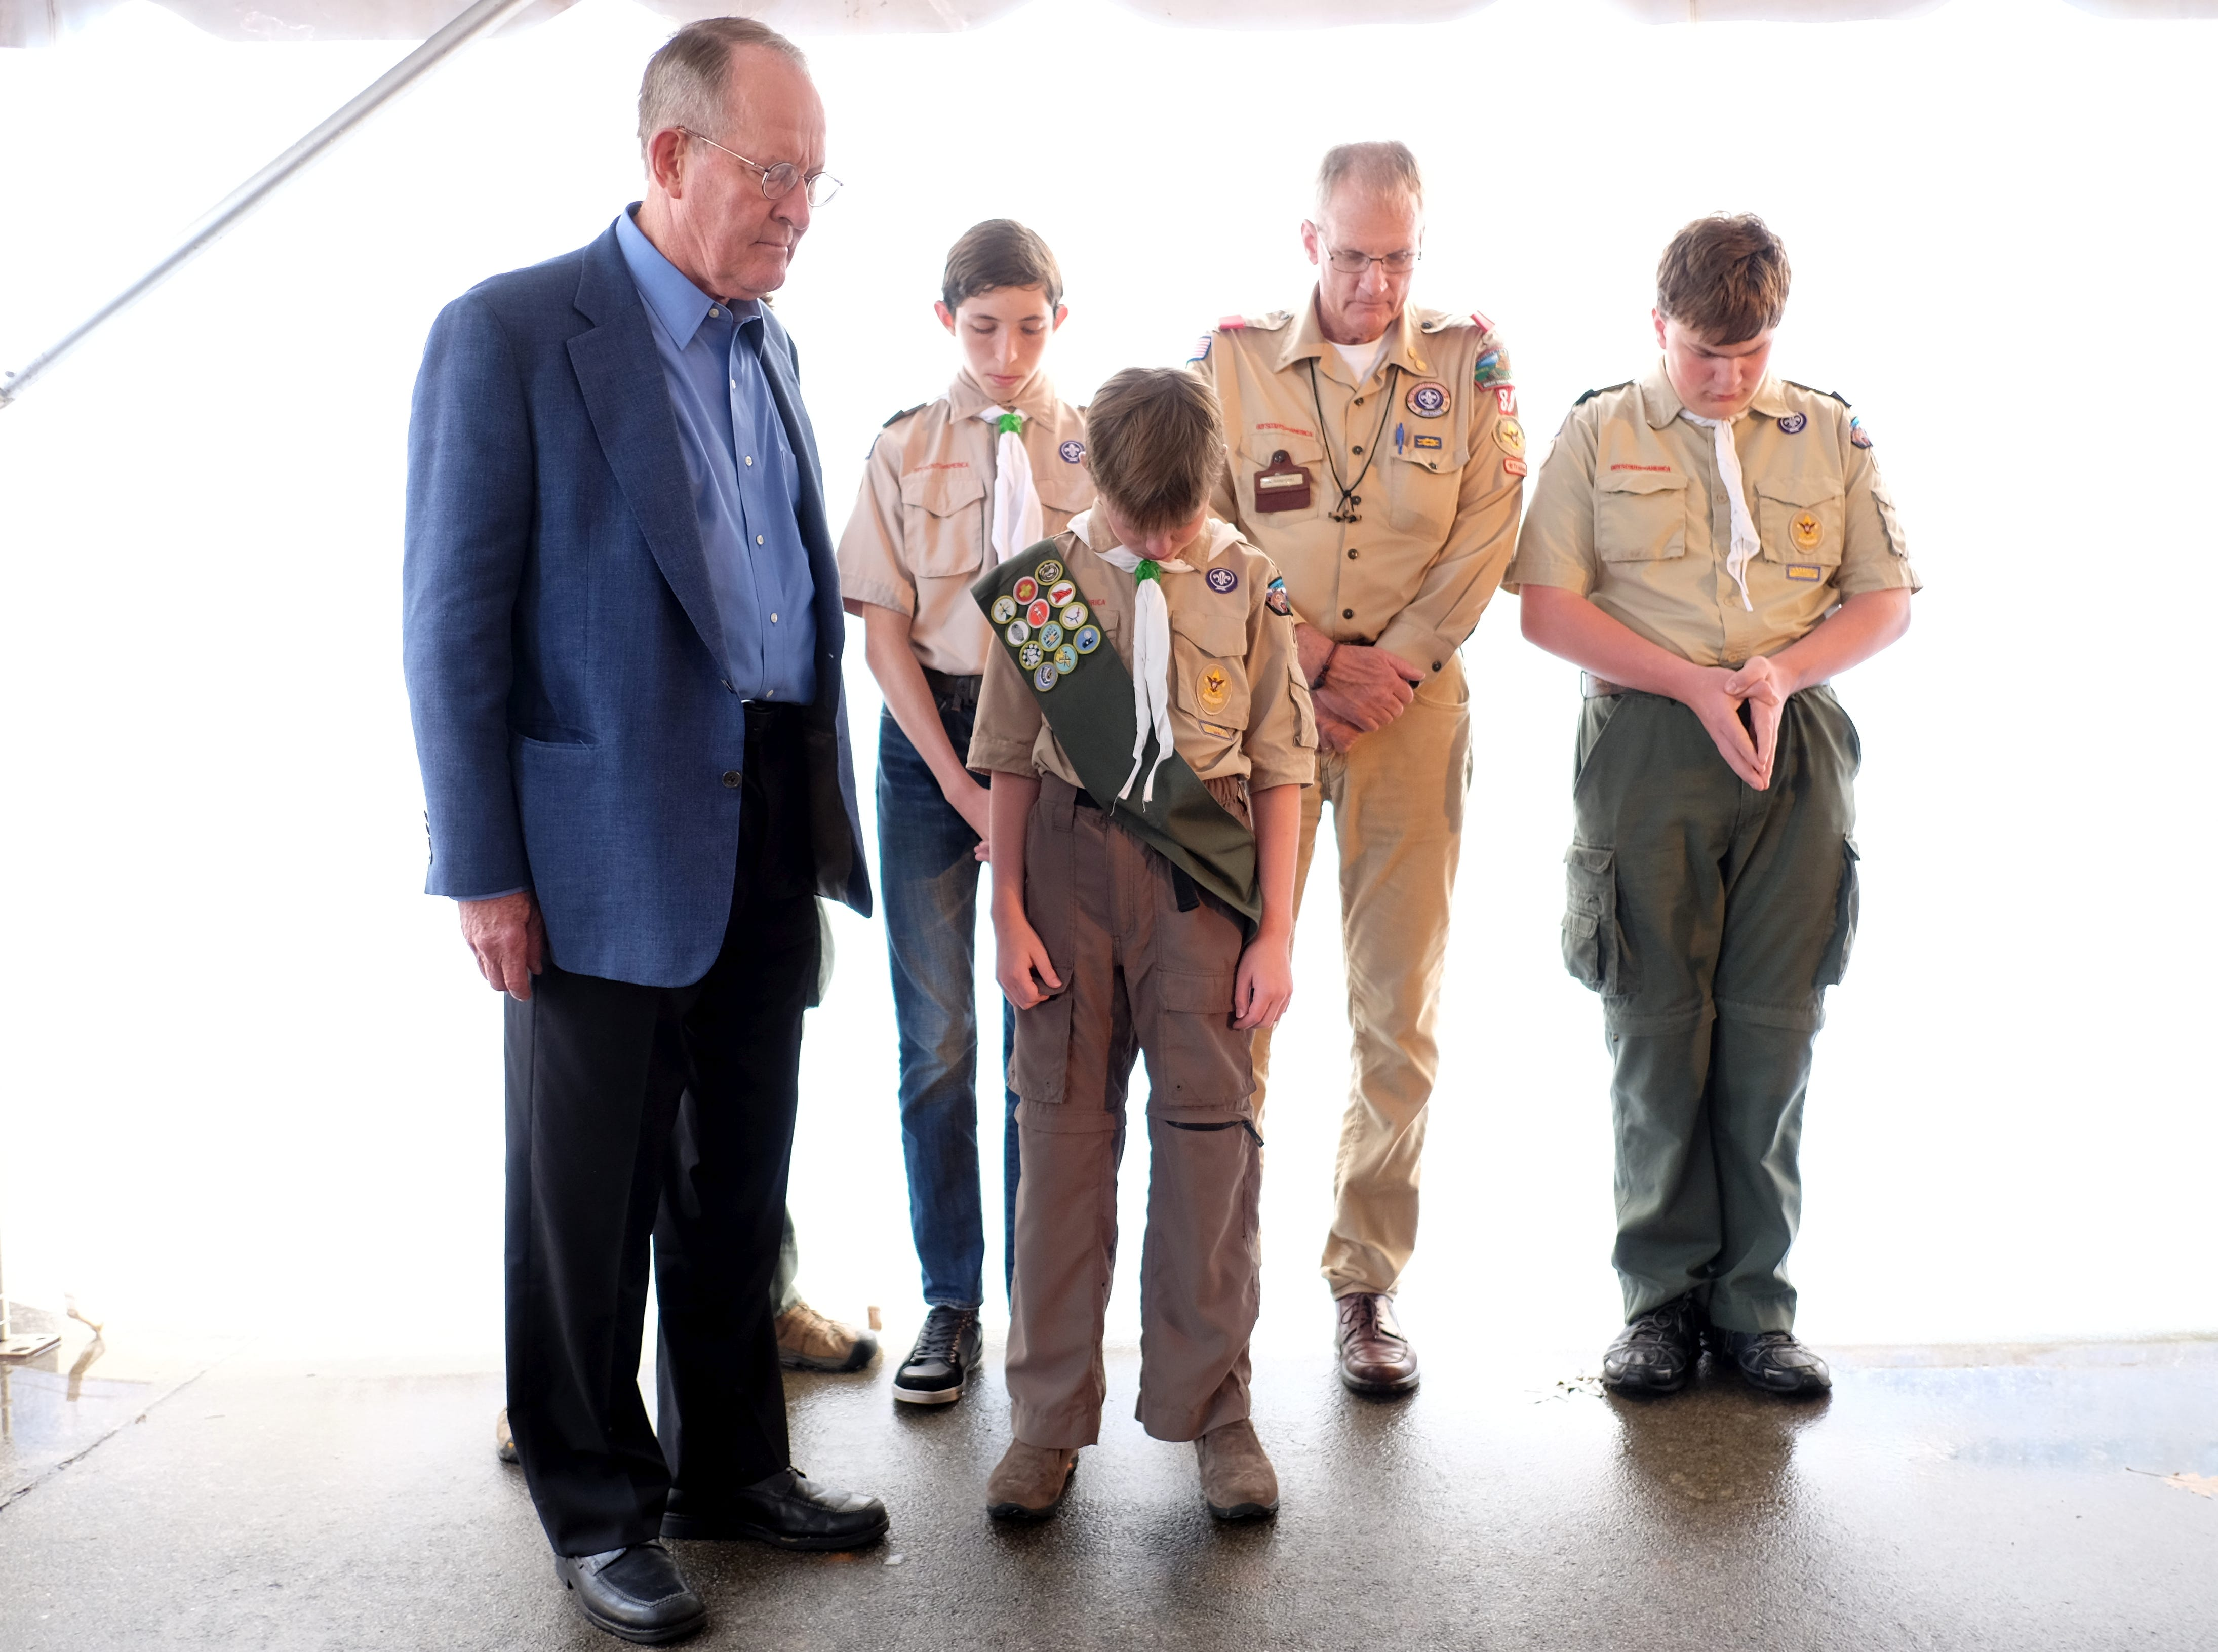 US Senator Lamar Alexander prays along side Boy Scout Troop 88 of Maryville during the Get Out the Vote Rally Tuesday, October 14, 2014 at Springbrook Park in Alcoa, Tenn.